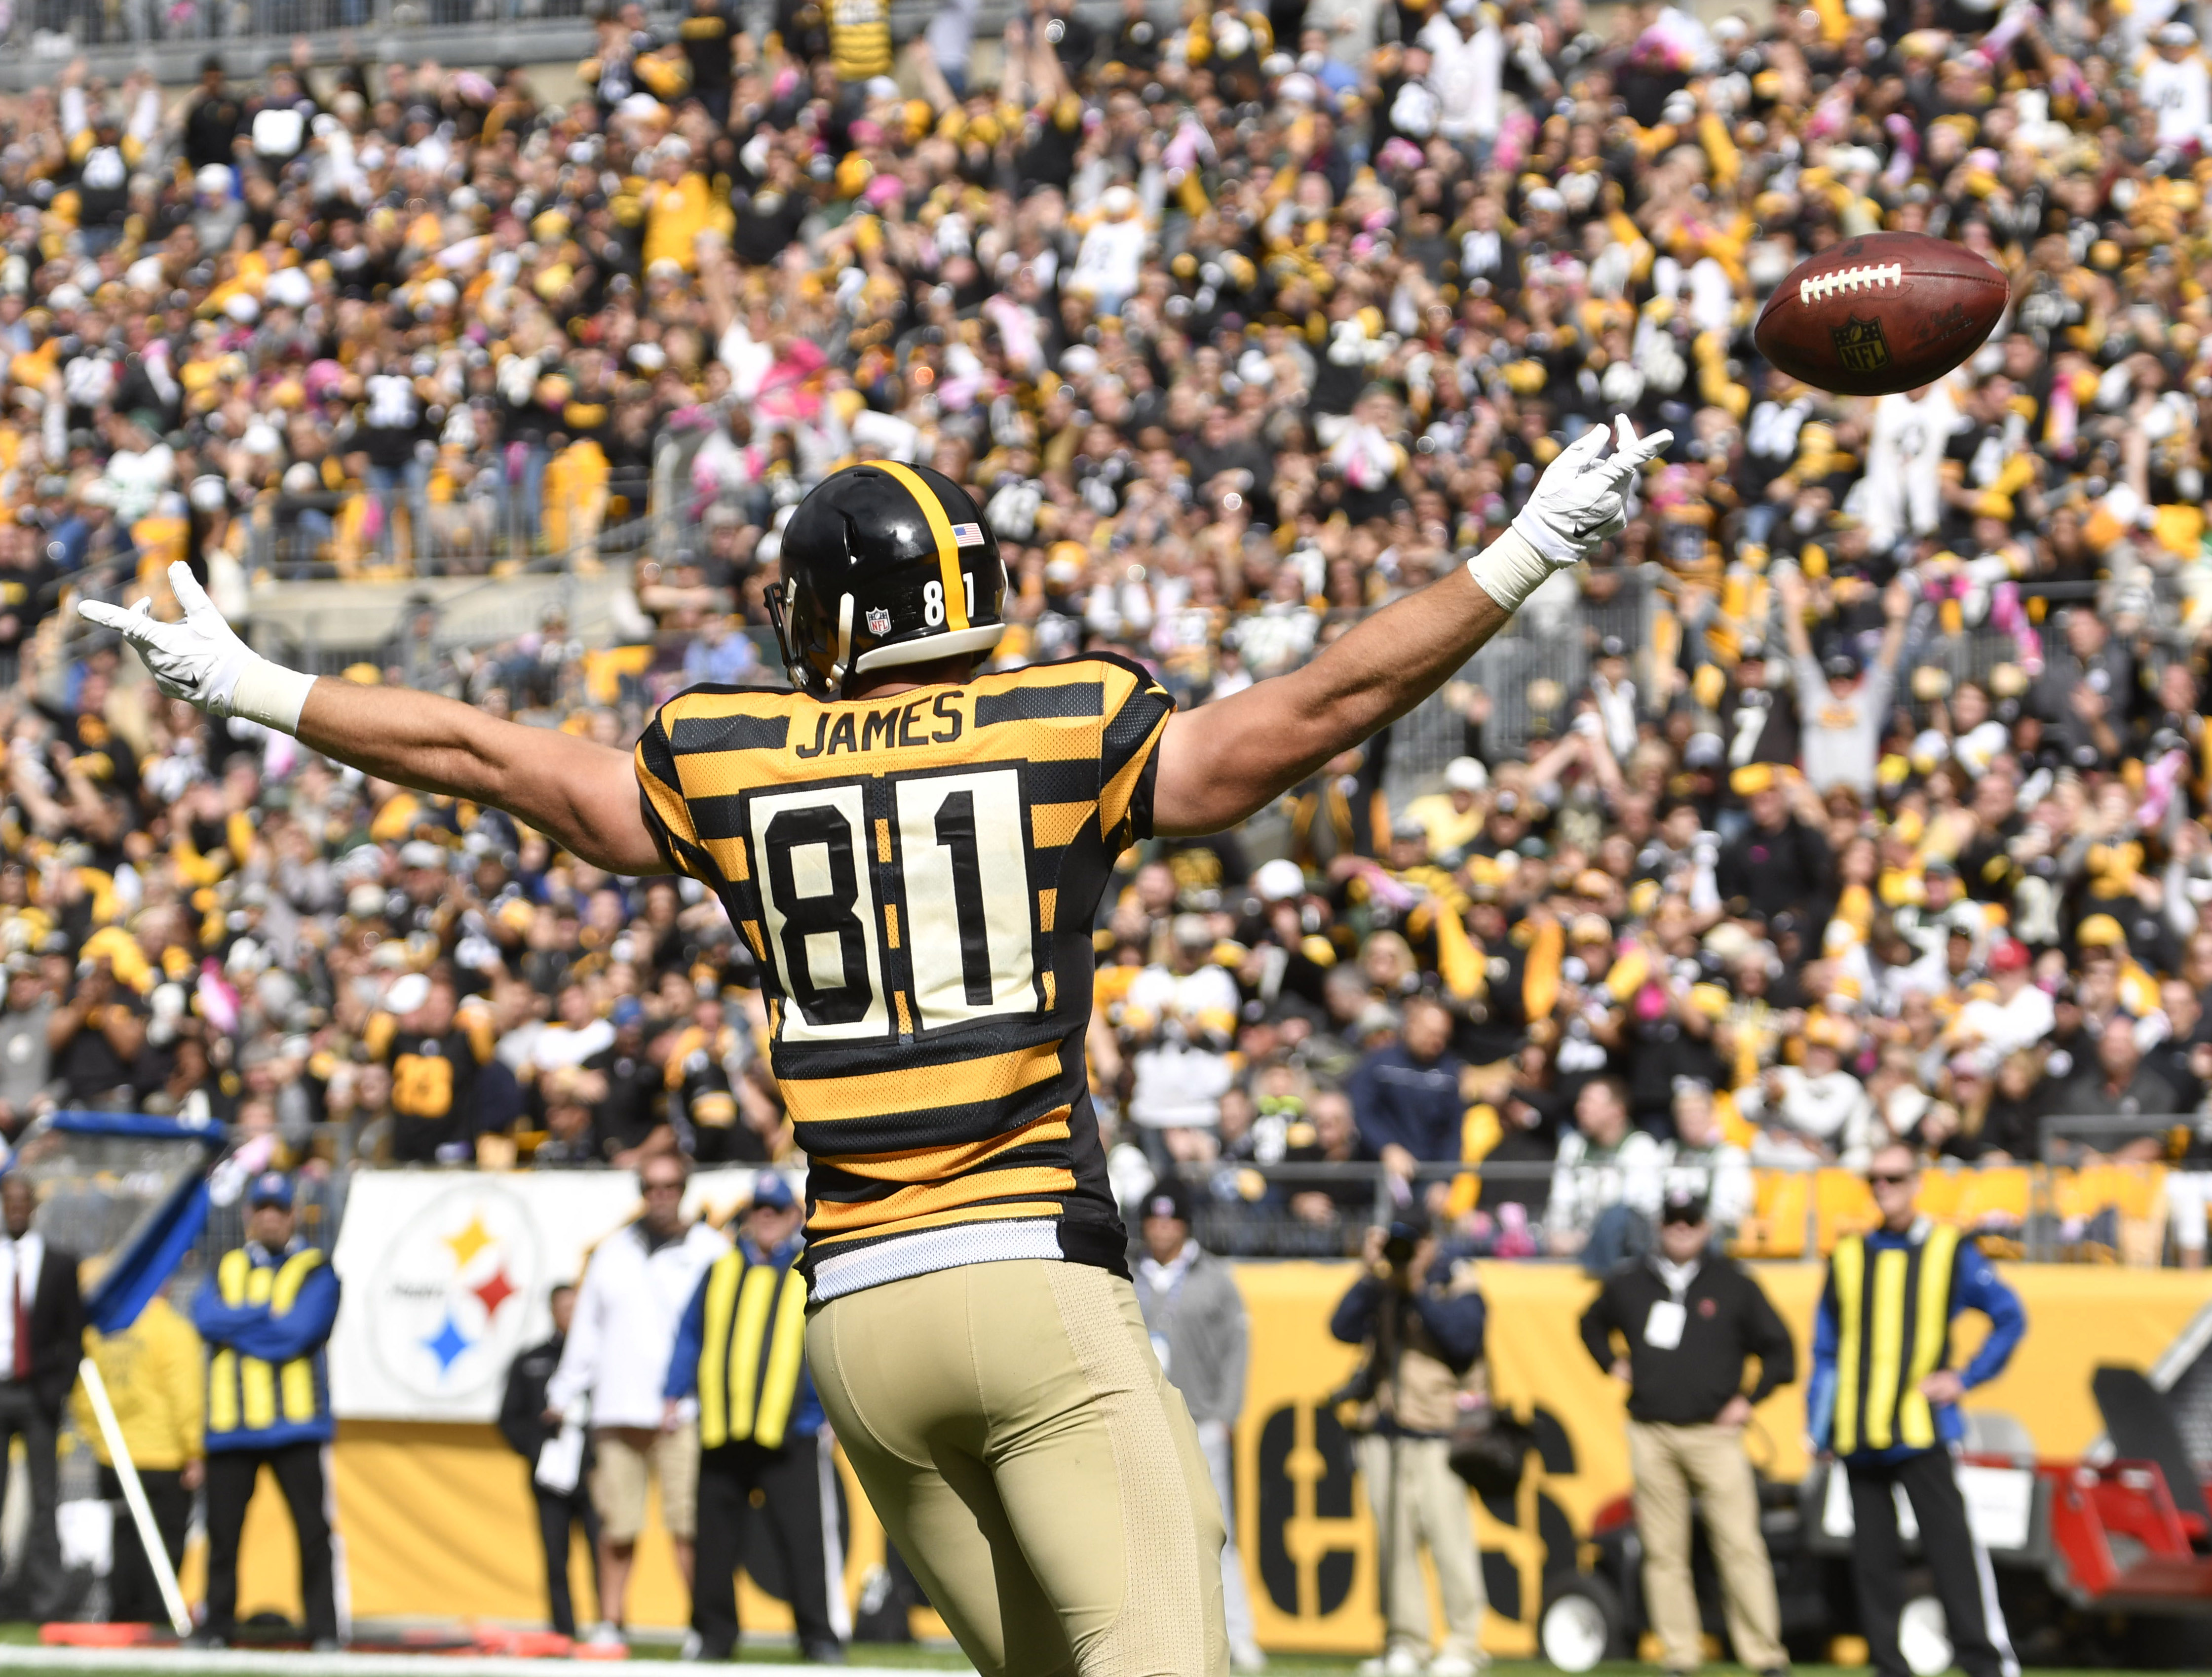 9598403-nfl-new-york-jets-at-pittsburgh-steelers